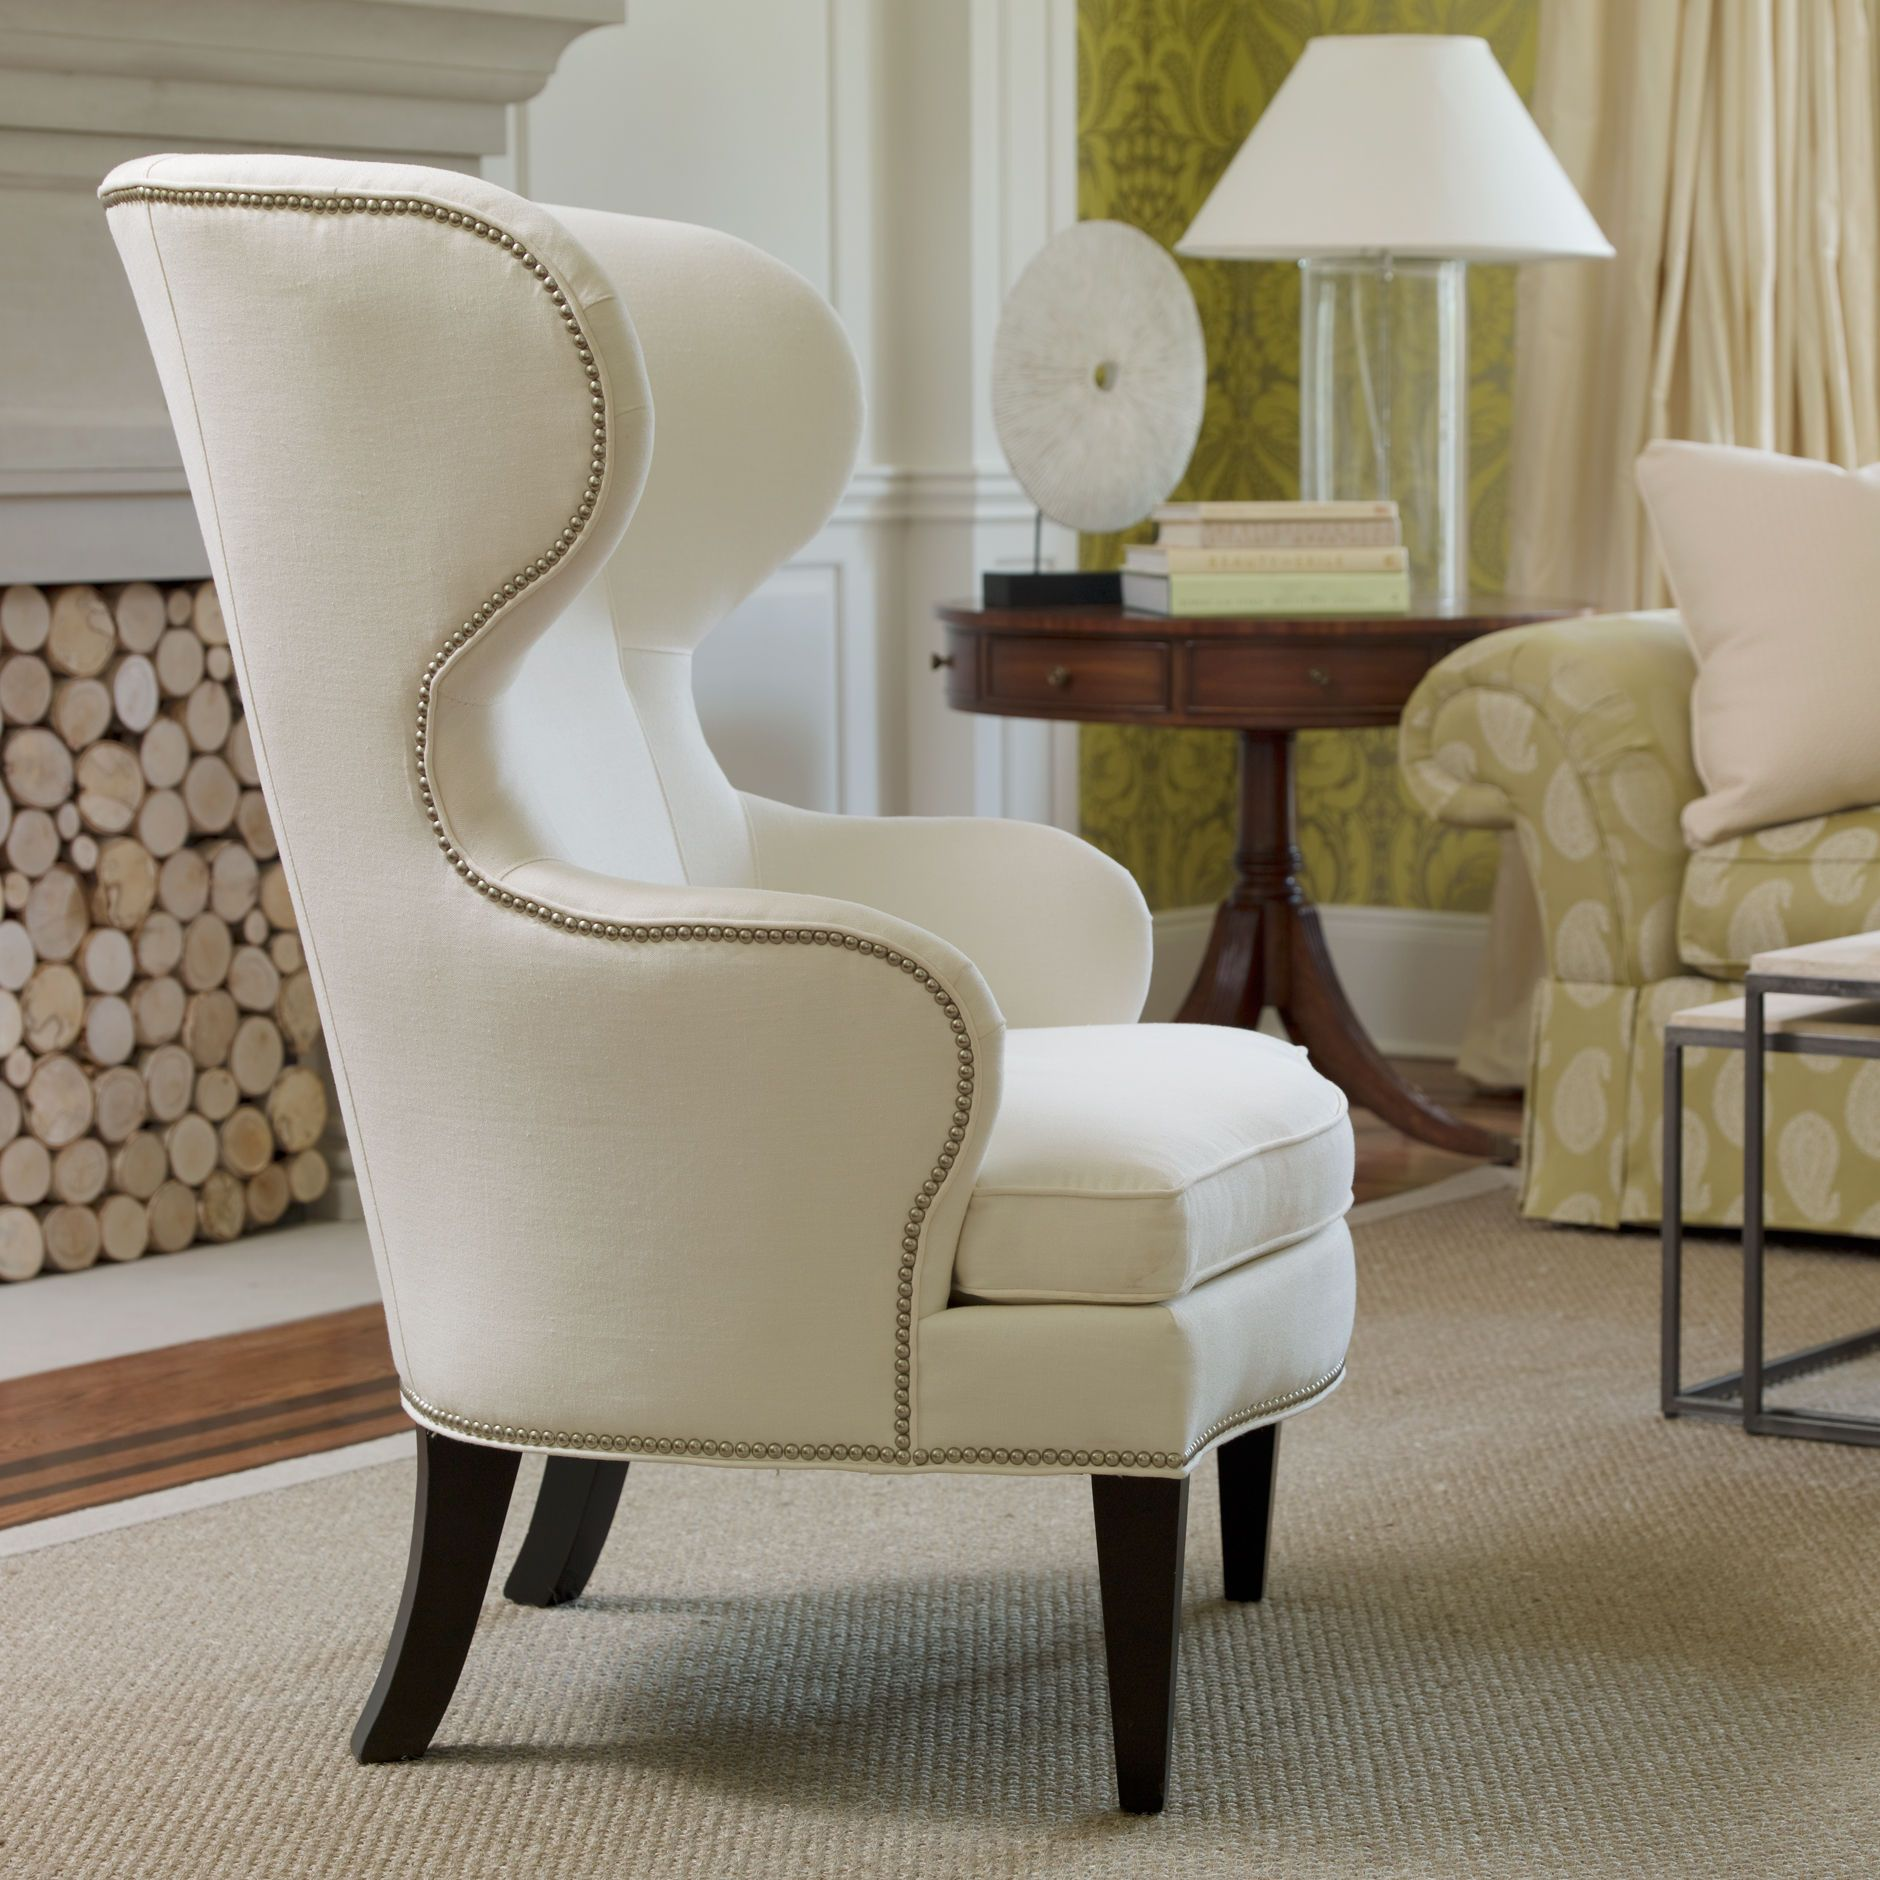 Rand chair from ethan allen inside seating area 24 - High back wing chairs for living room ...